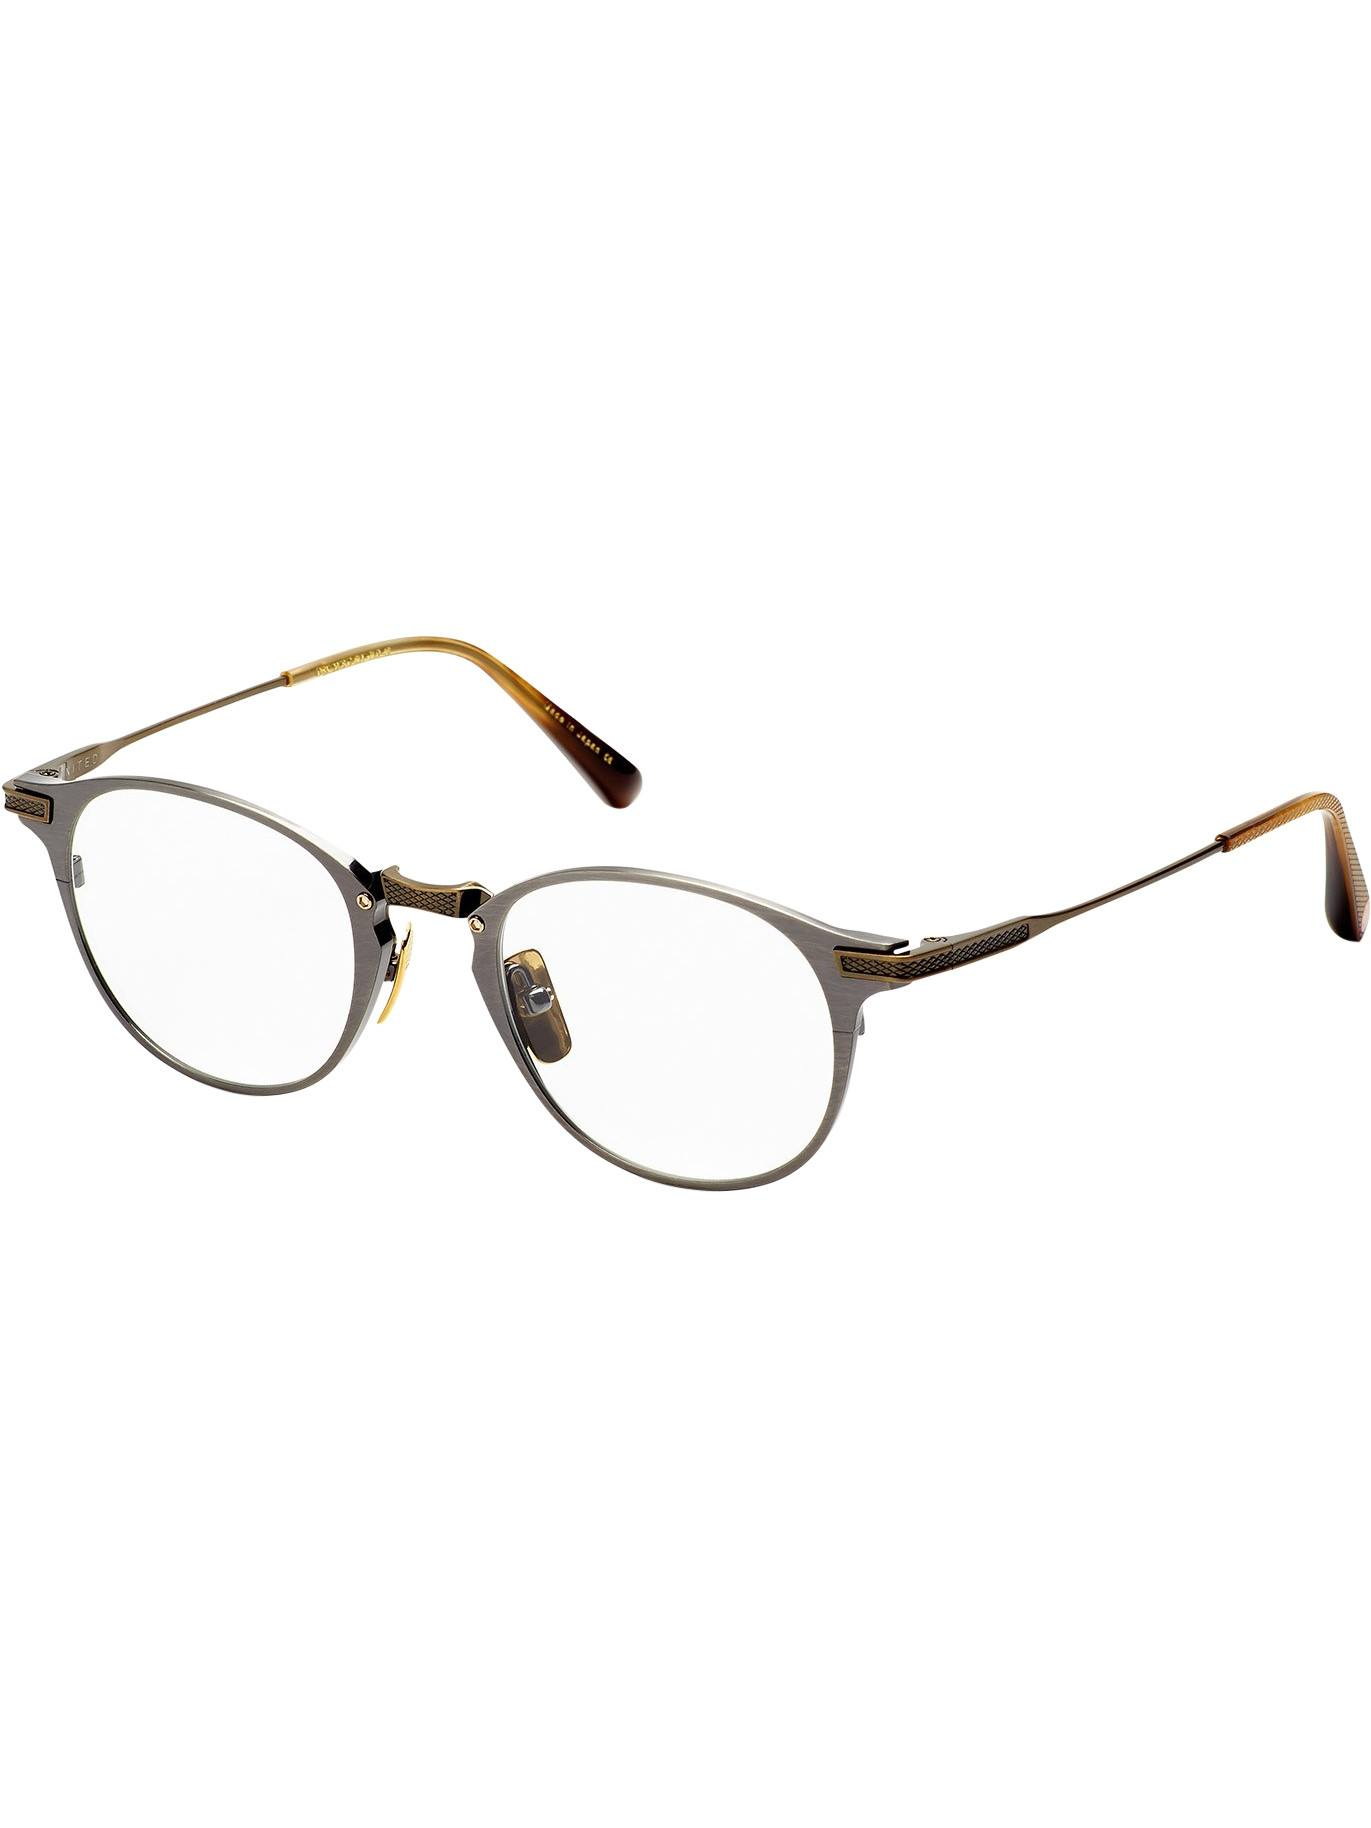 420fe2f79bb Optical Frame - Dita United DRX-2078C Glasses